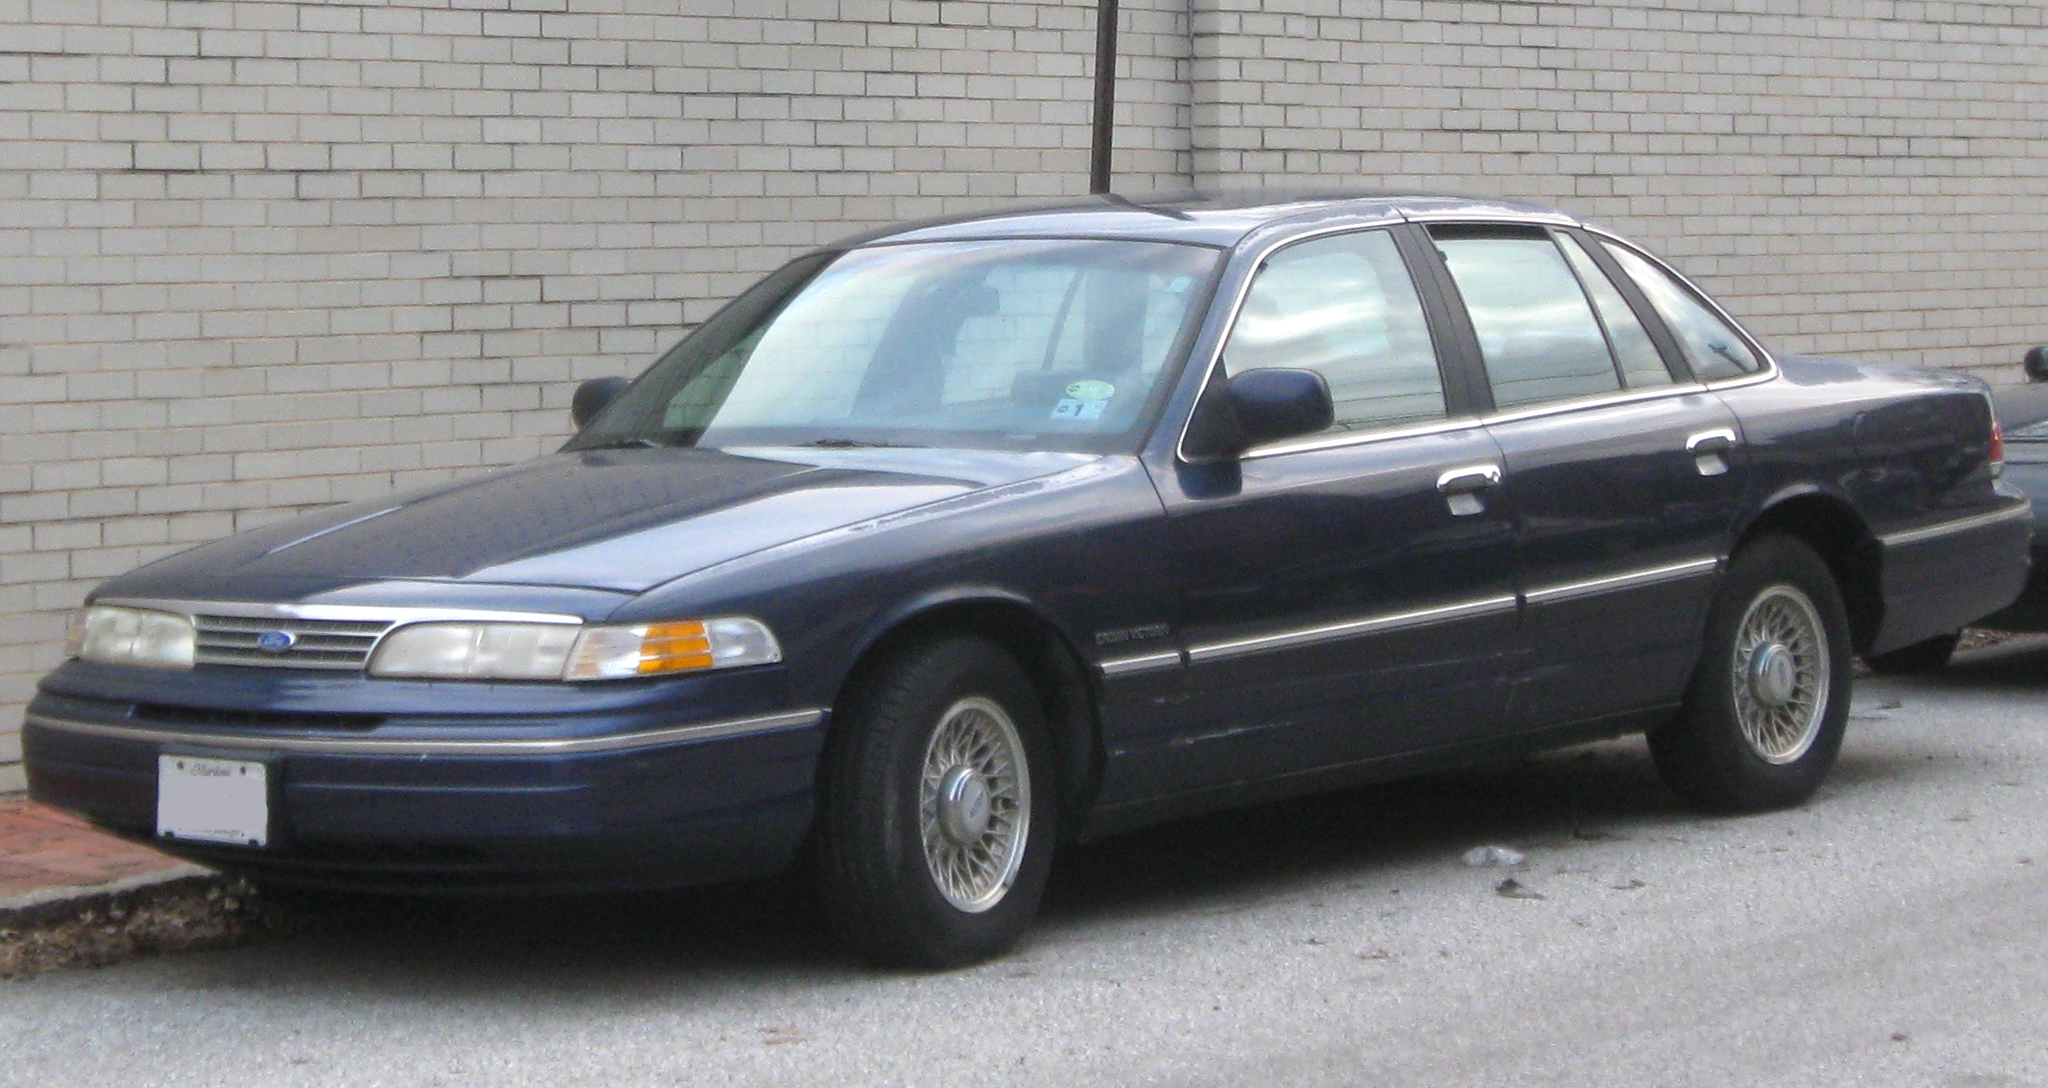 ford crown victoria images #8